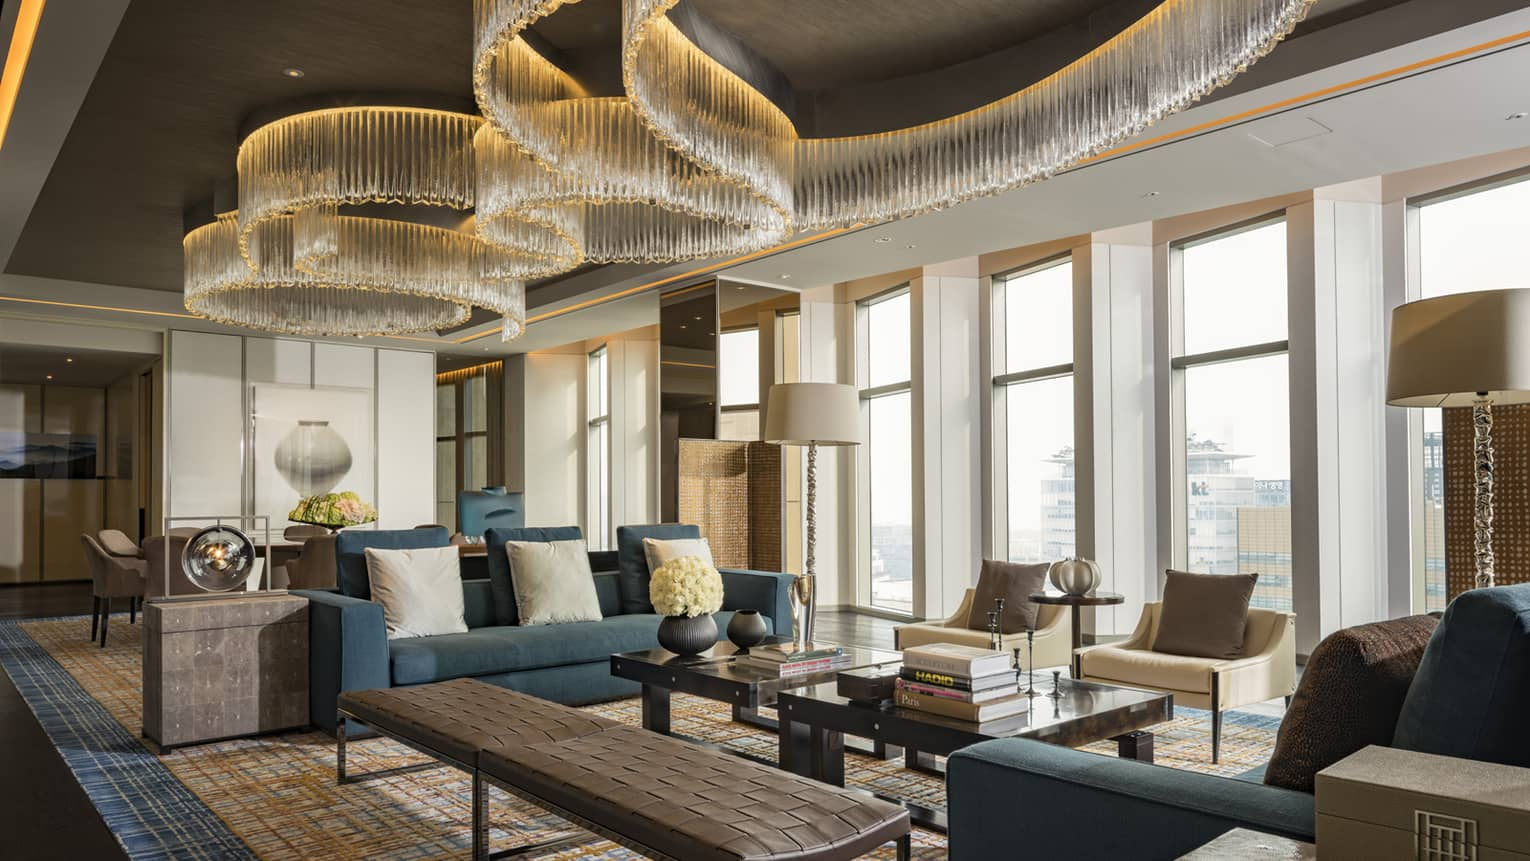 Presidential Suite seating area with large blue sofas, long leather bench, tables under modern chandeliers from soaring ceilings